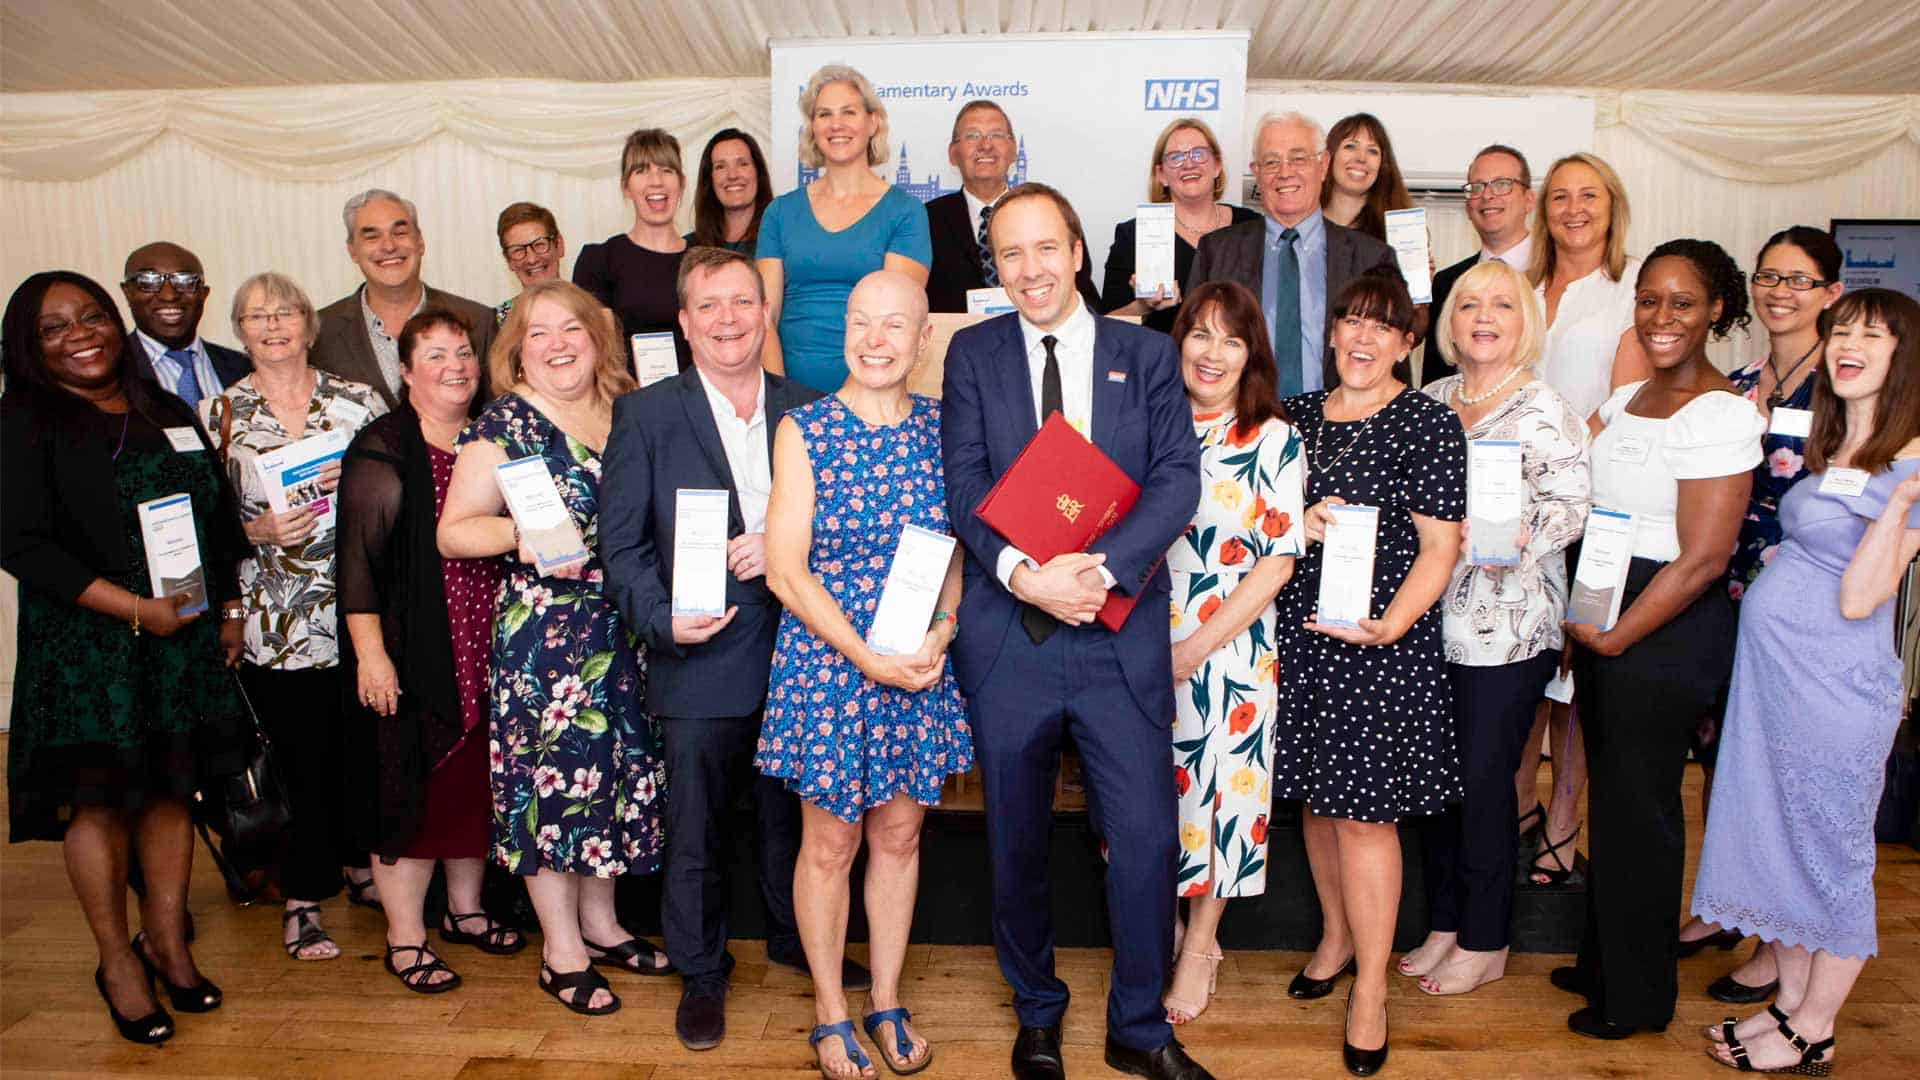 pvcmed-nhs-parliamentary-awards-2019